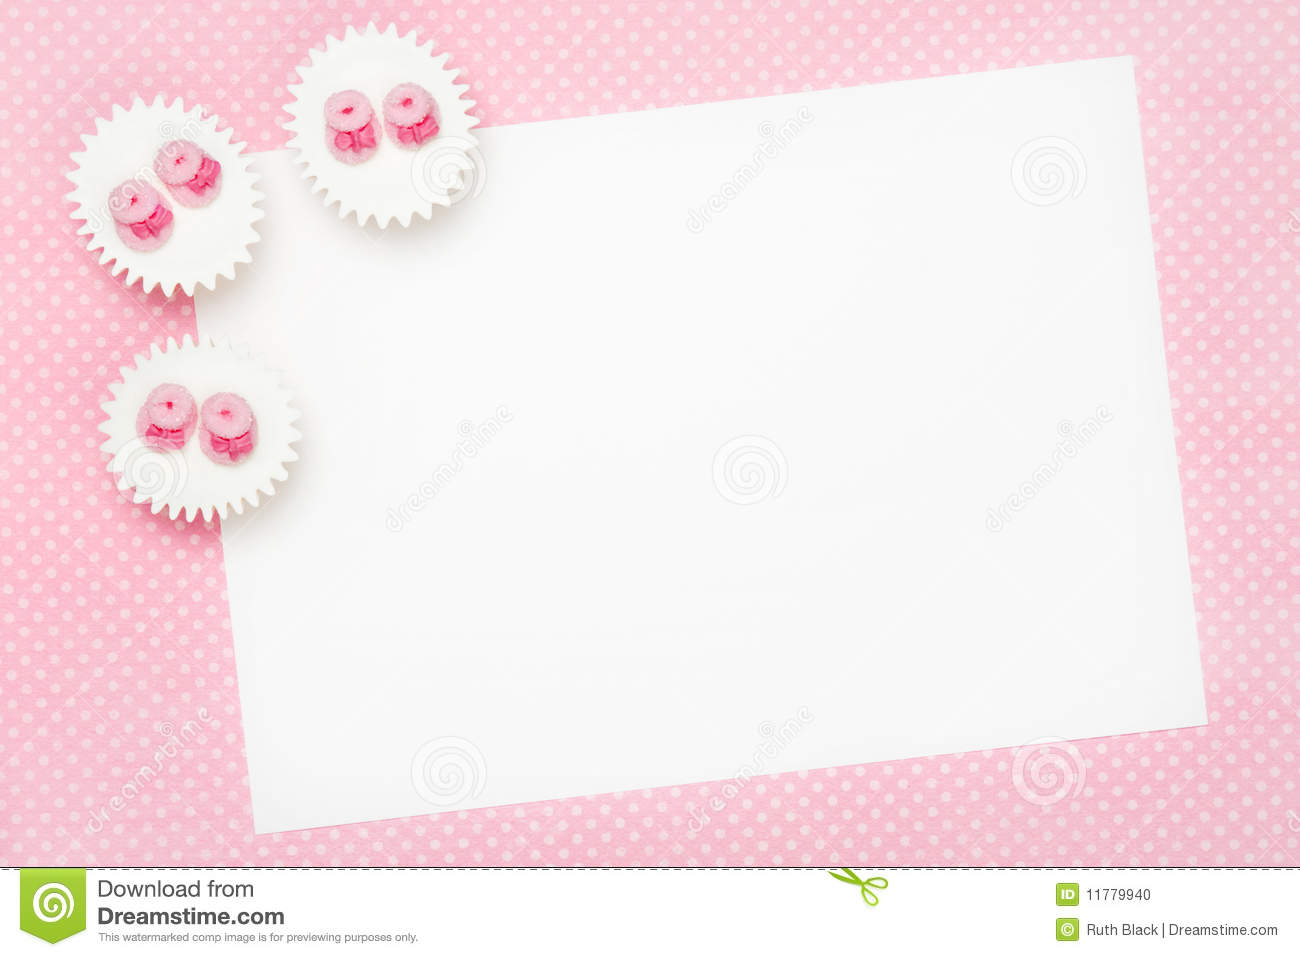 Blank Baby Shower Invitation  Baby Shower Invitation Backgrounds Free